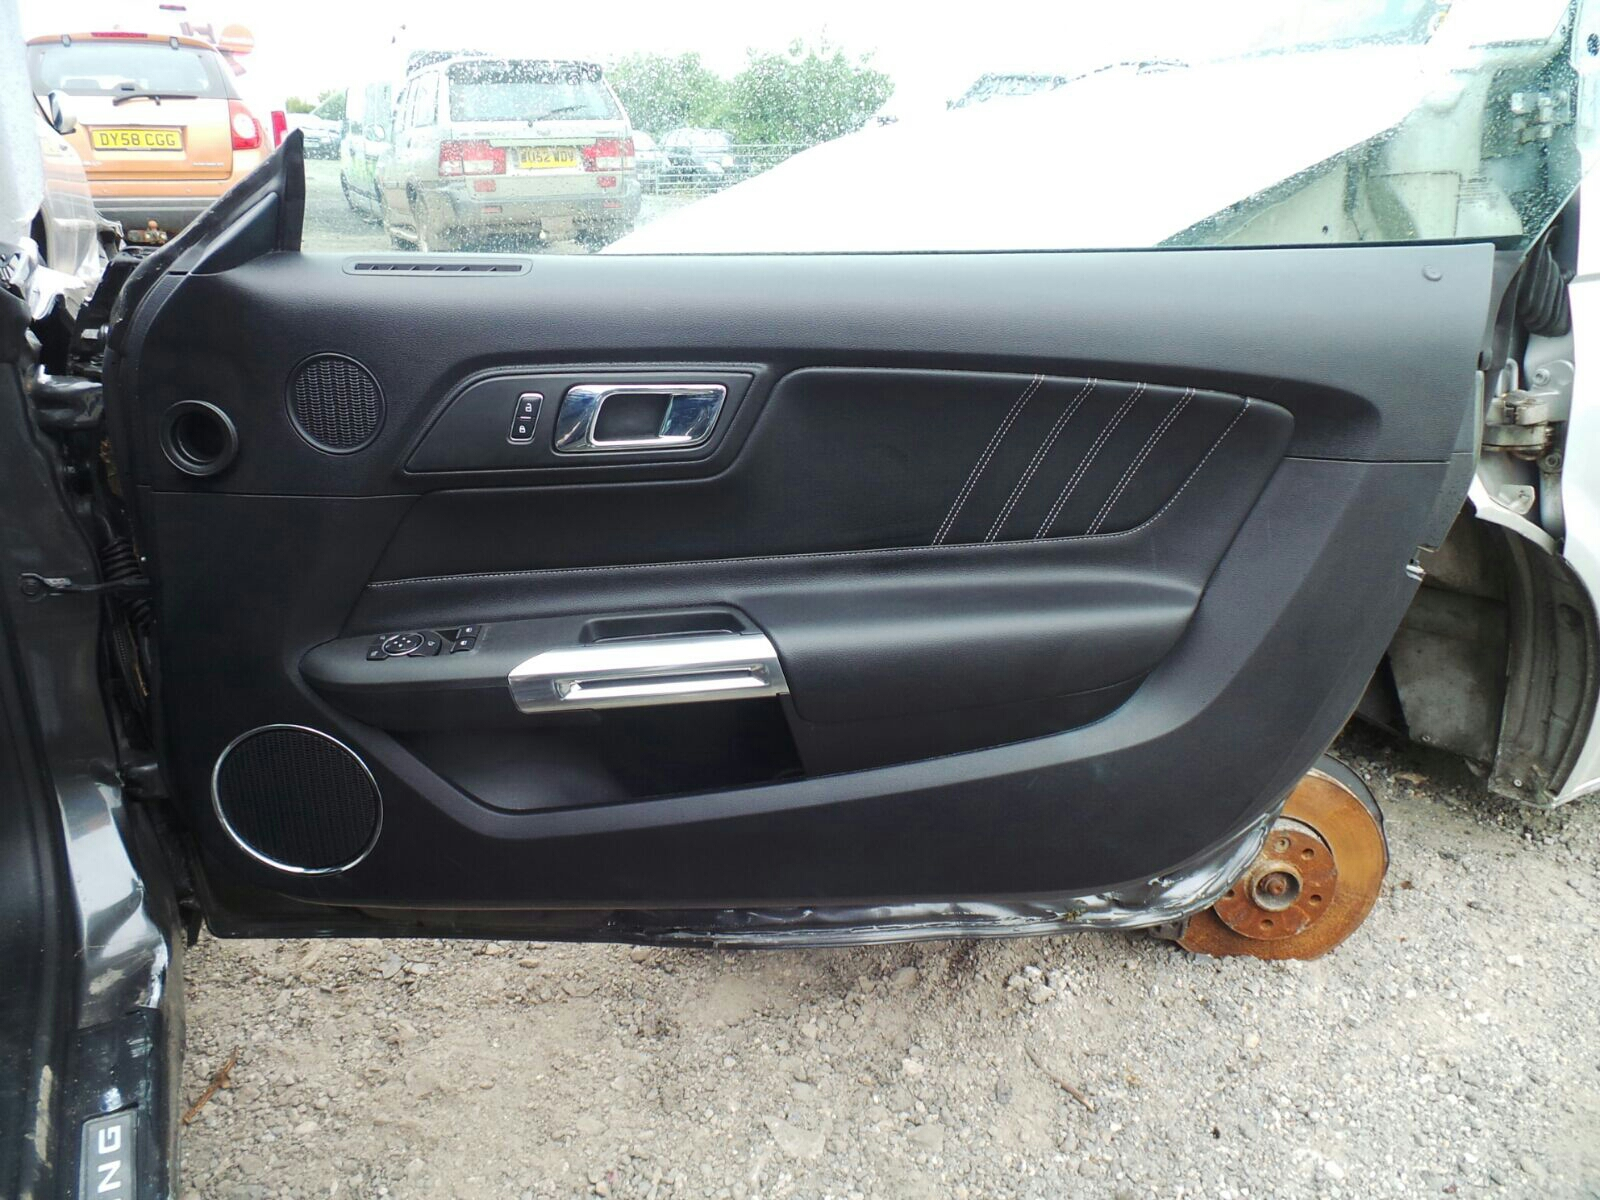 Mustang Used Parts >> Ford Mustang 2015 To 2018 Gt Door Front Trim Board Rh Used And Spare